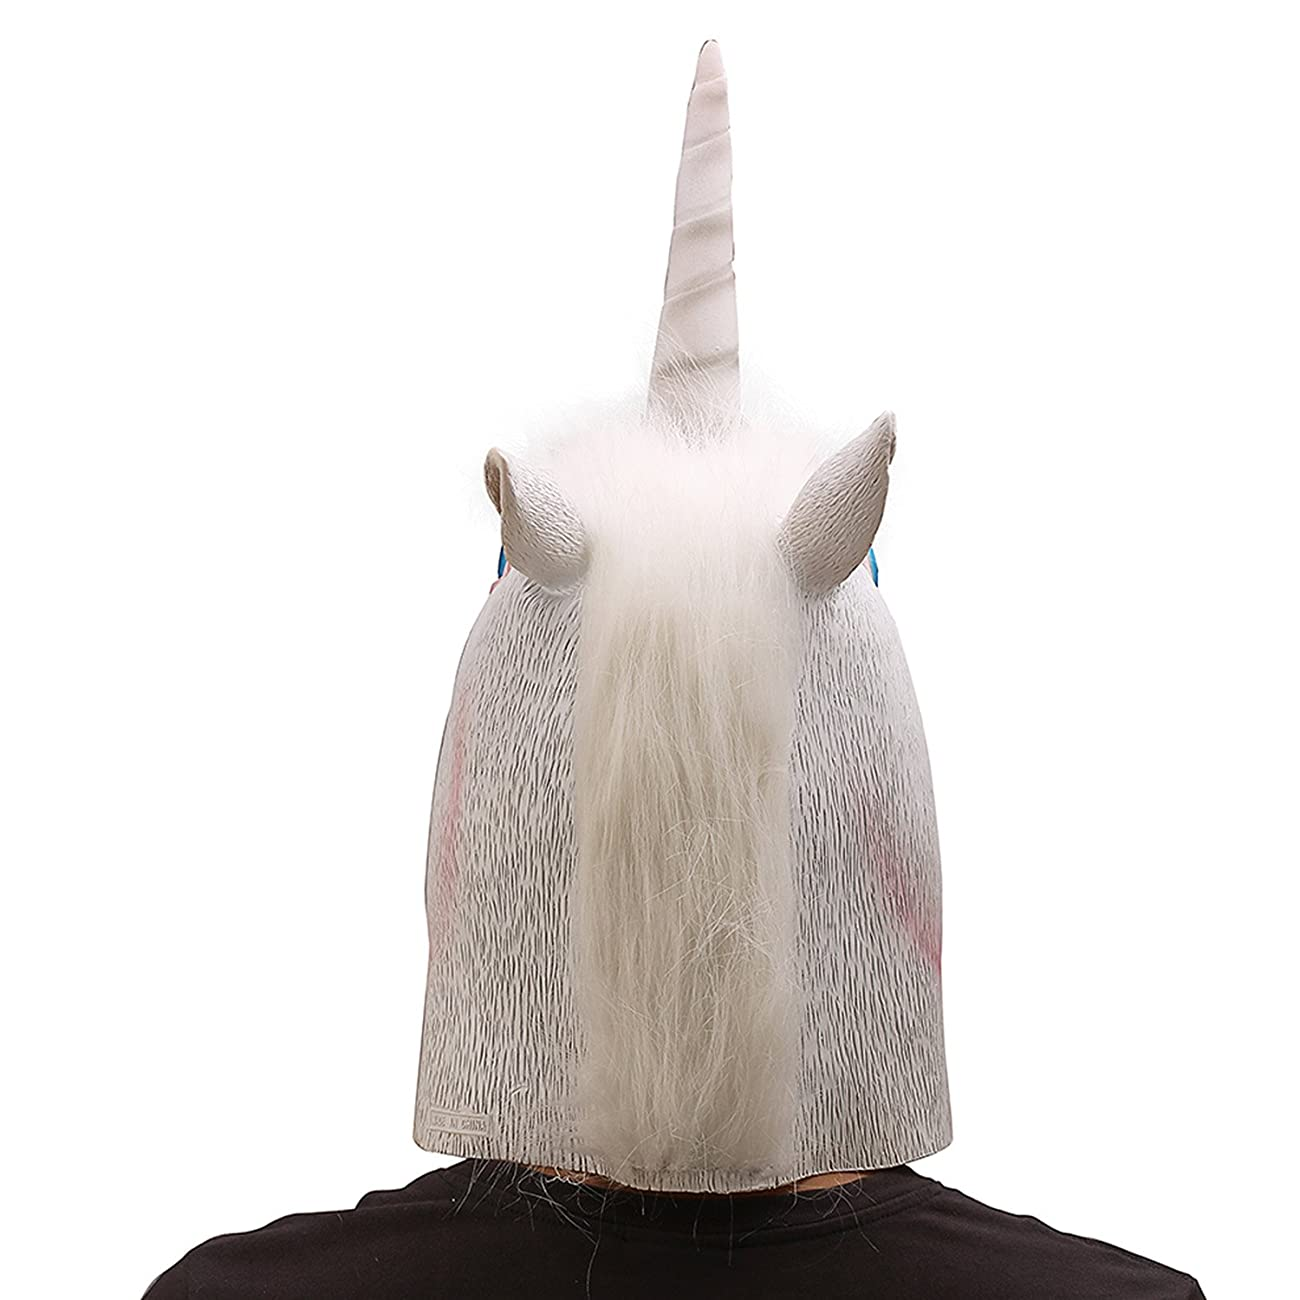 Ylovetoys Unicorn Head Mask Halloween Costume Party Novelty Latex Animal Mask 3